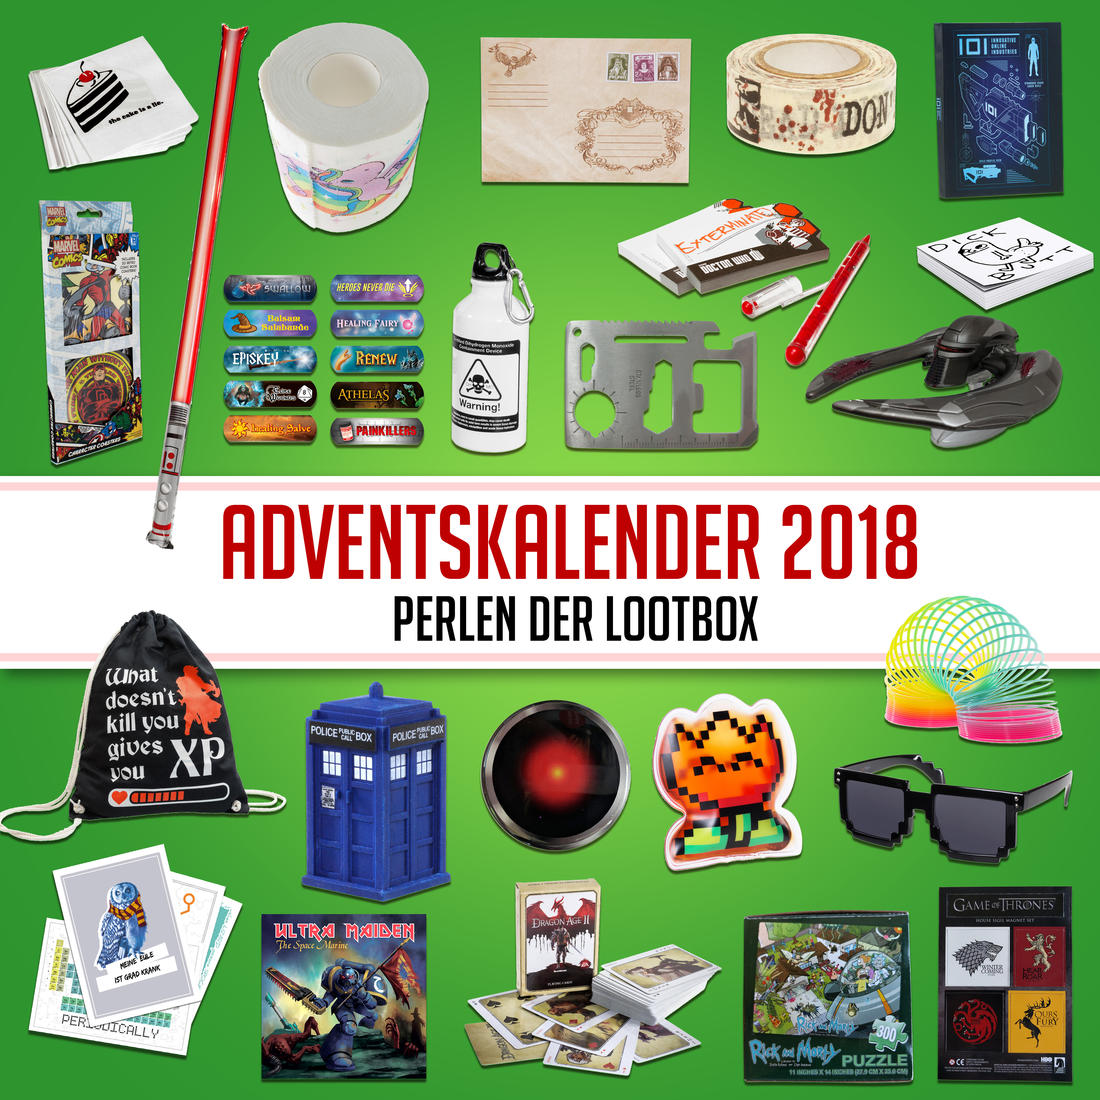 Adventskalender Bild Adventskalender 2018